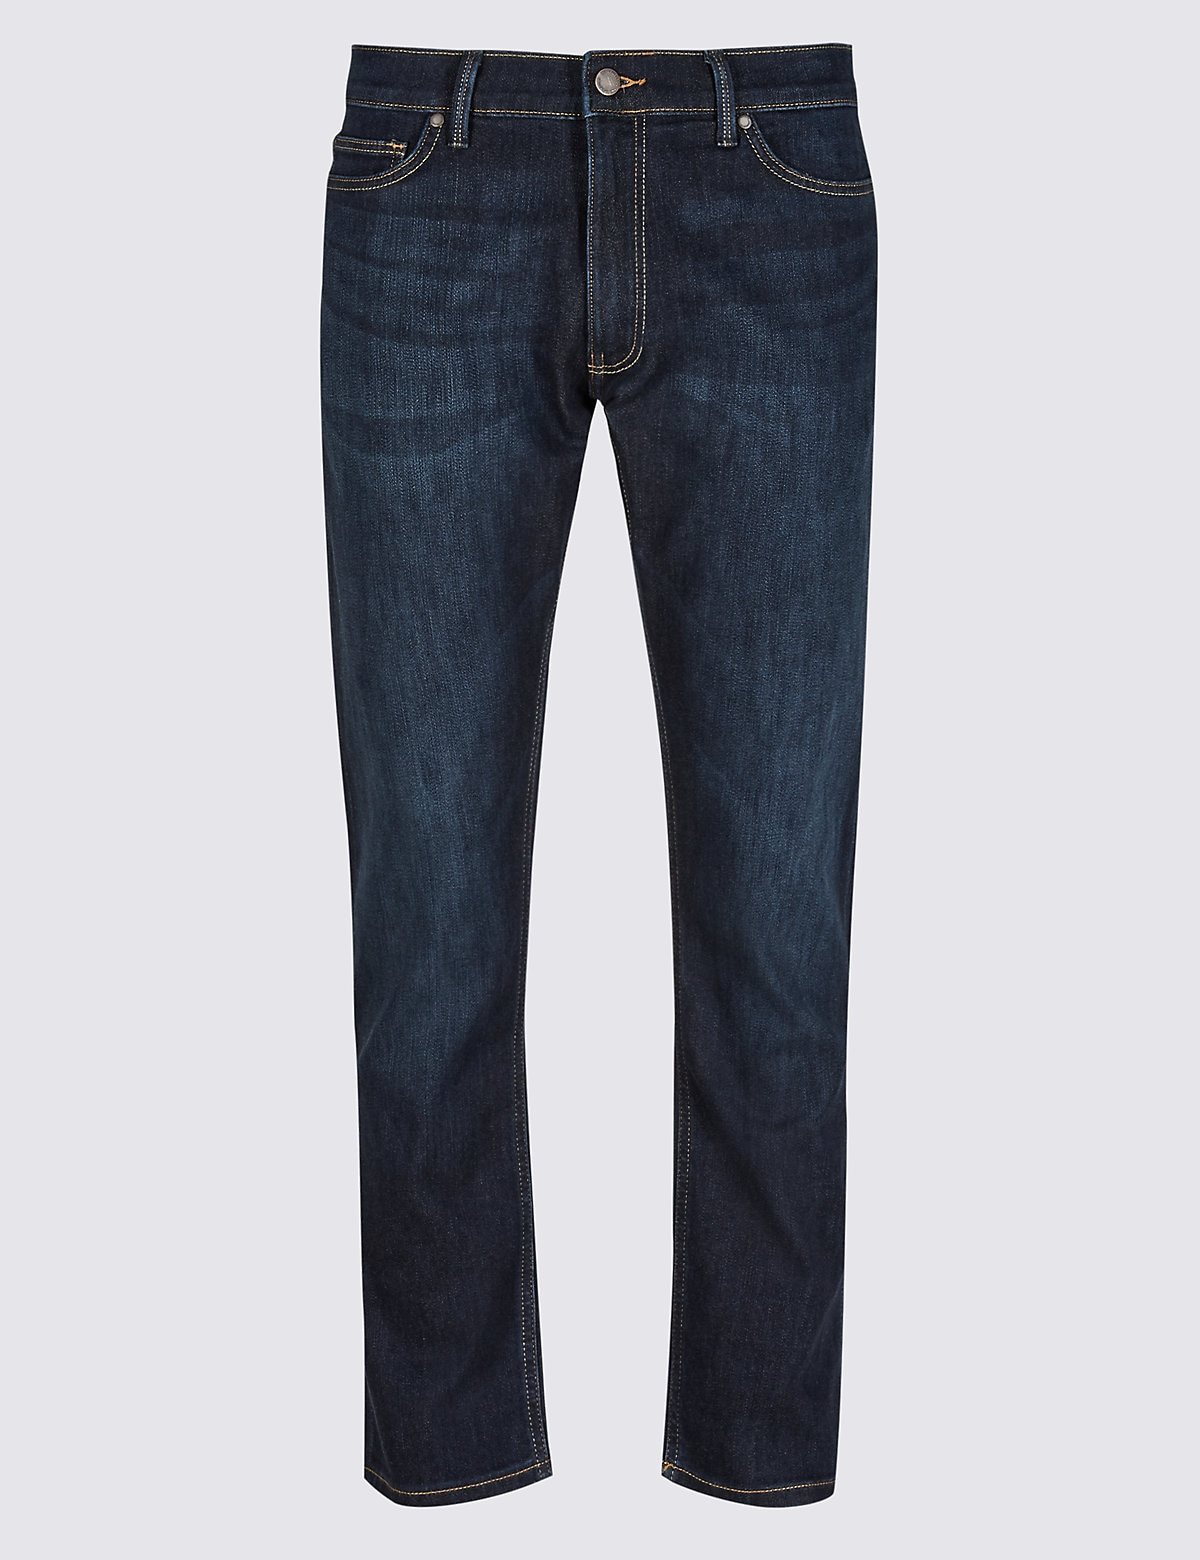 Marks & Spencer Dark Indigo Luxury Performance Slim Fit Jeans